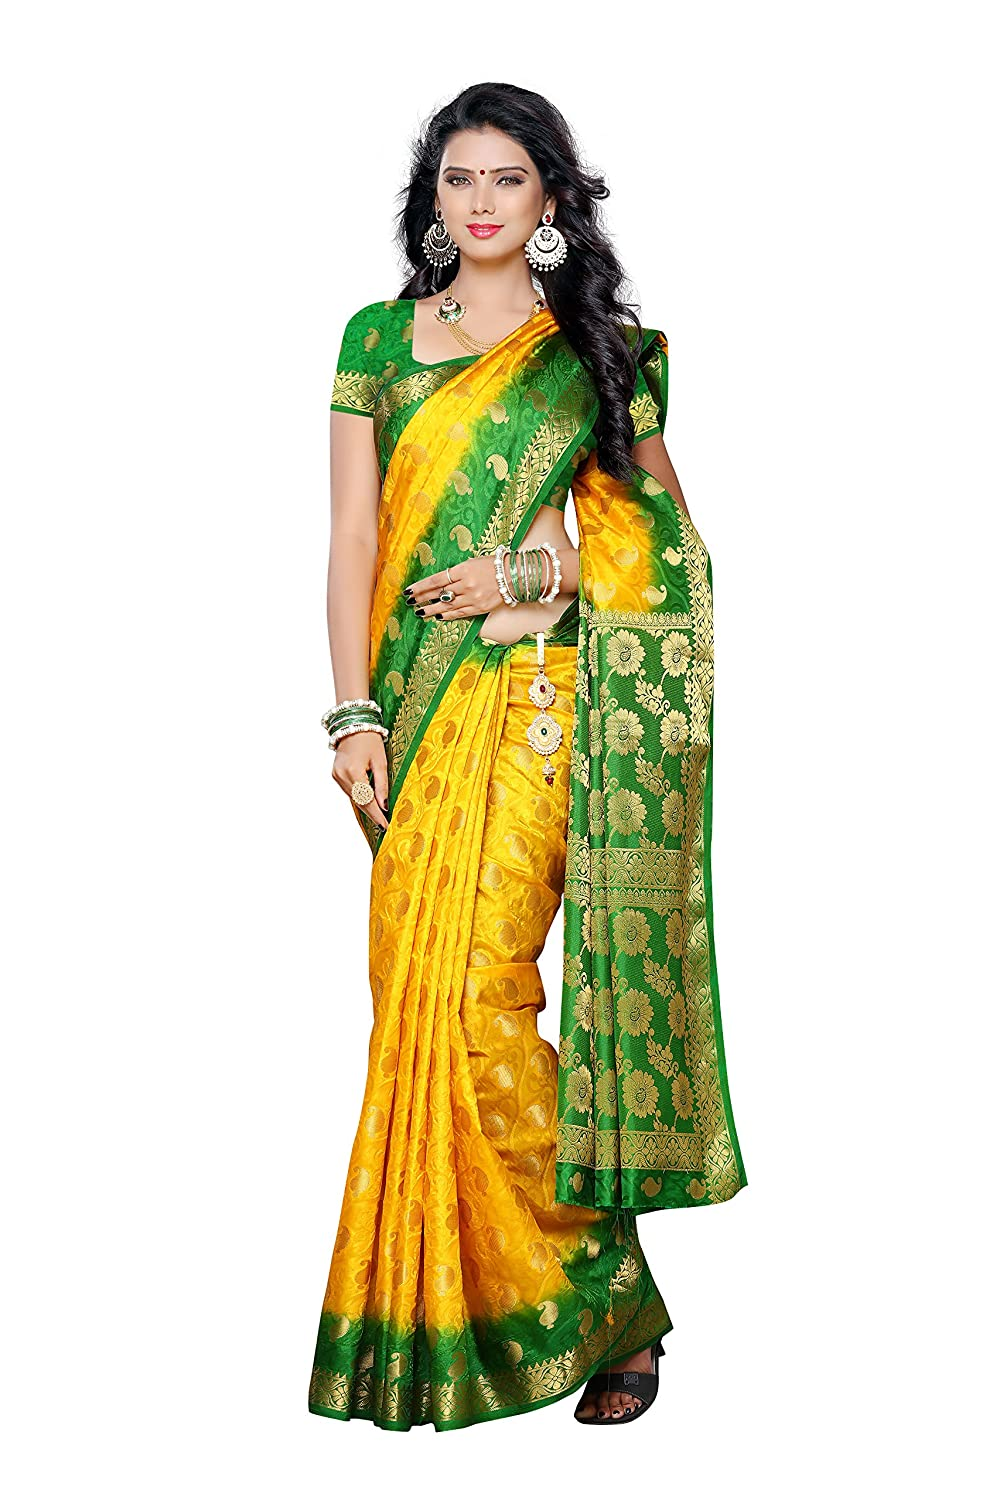 f2038265e8c Mimosa Women s Traditional Artificial Silk Saree Kanjivaram Style with Blouse  Color Gold(3305-103-2D-GLD)  Amazon.co.uk  Clothing